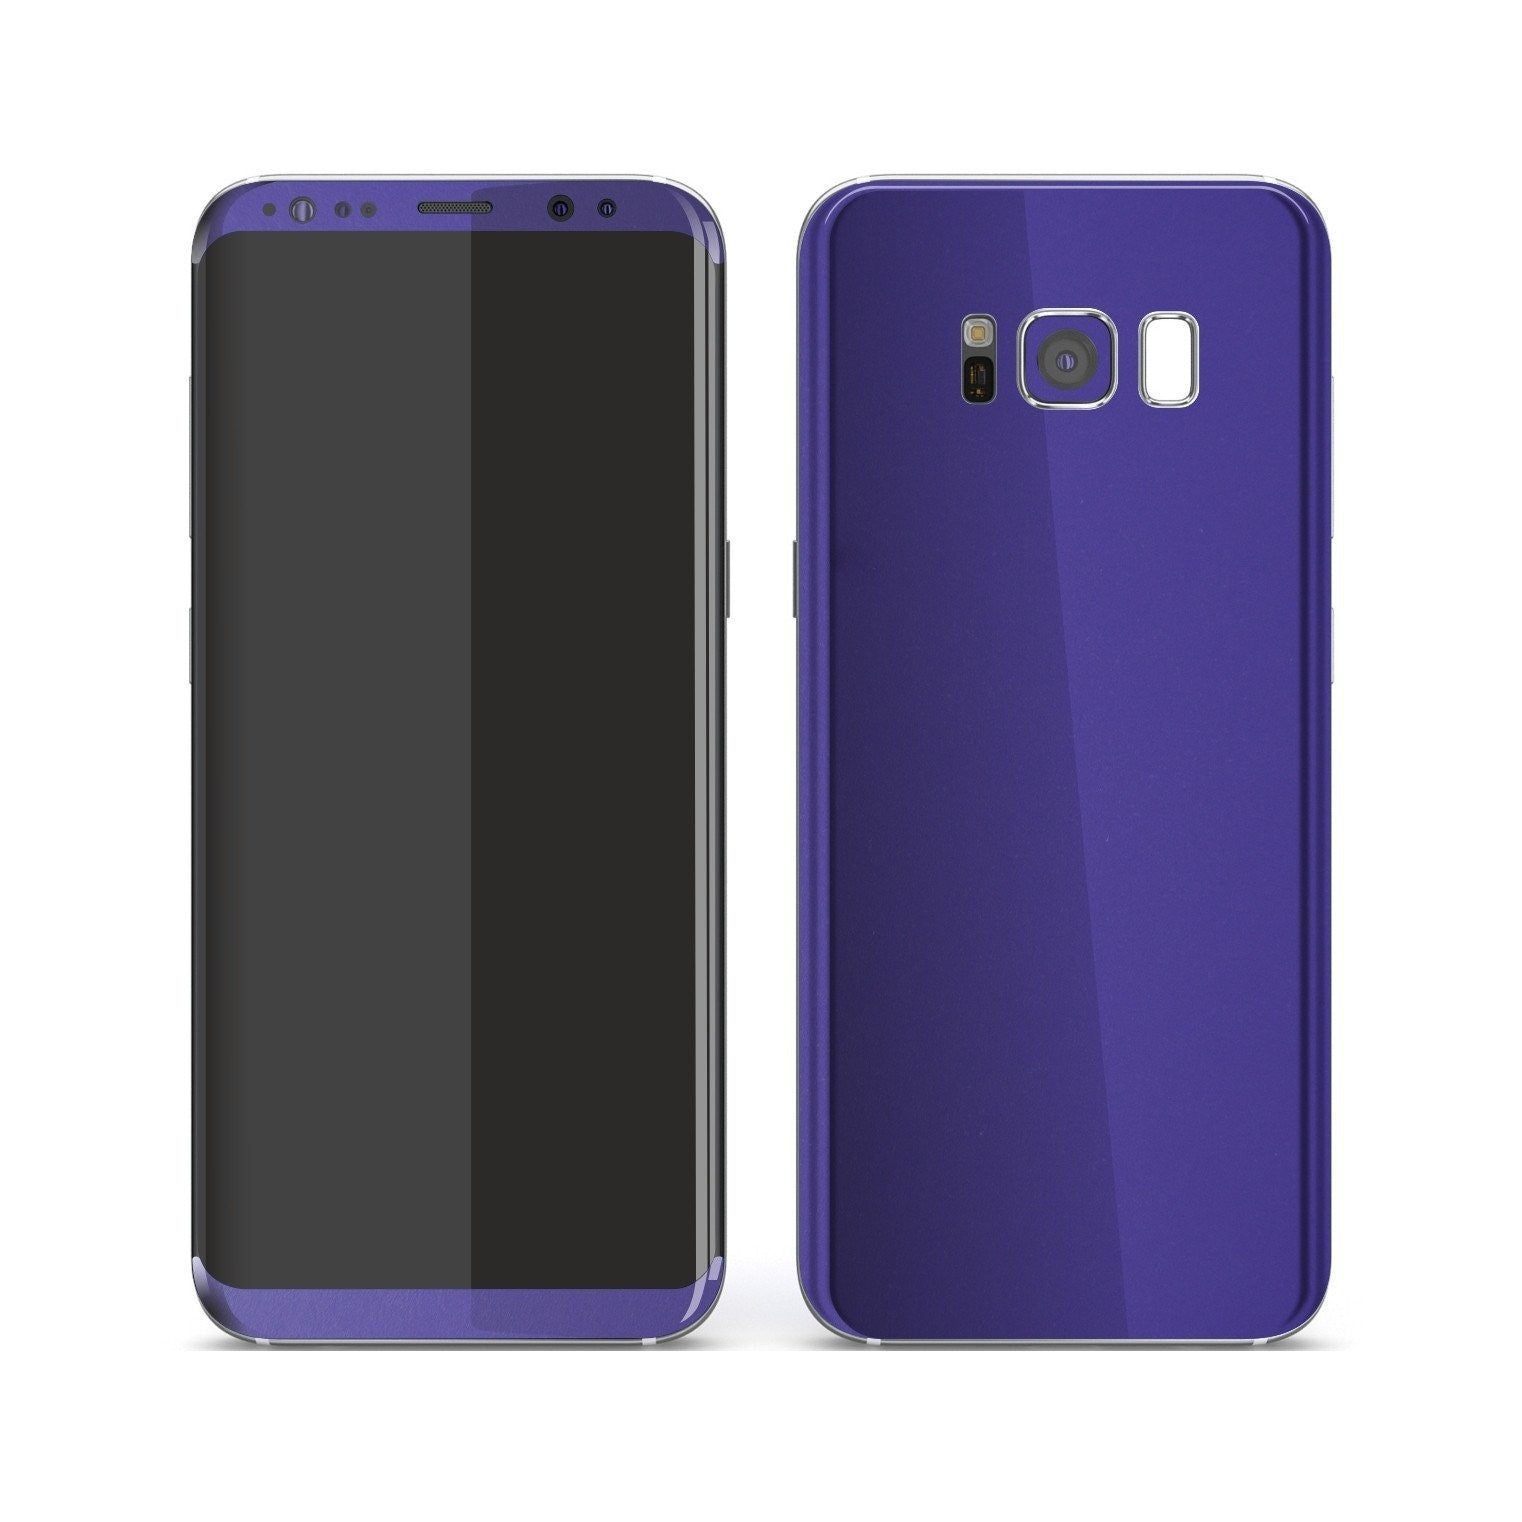 Samsung Galaxy S8+ Royal Purple Matt Skin, Decal, Wrap, Protector, Cover by EasySkinz | EasySkinz.com